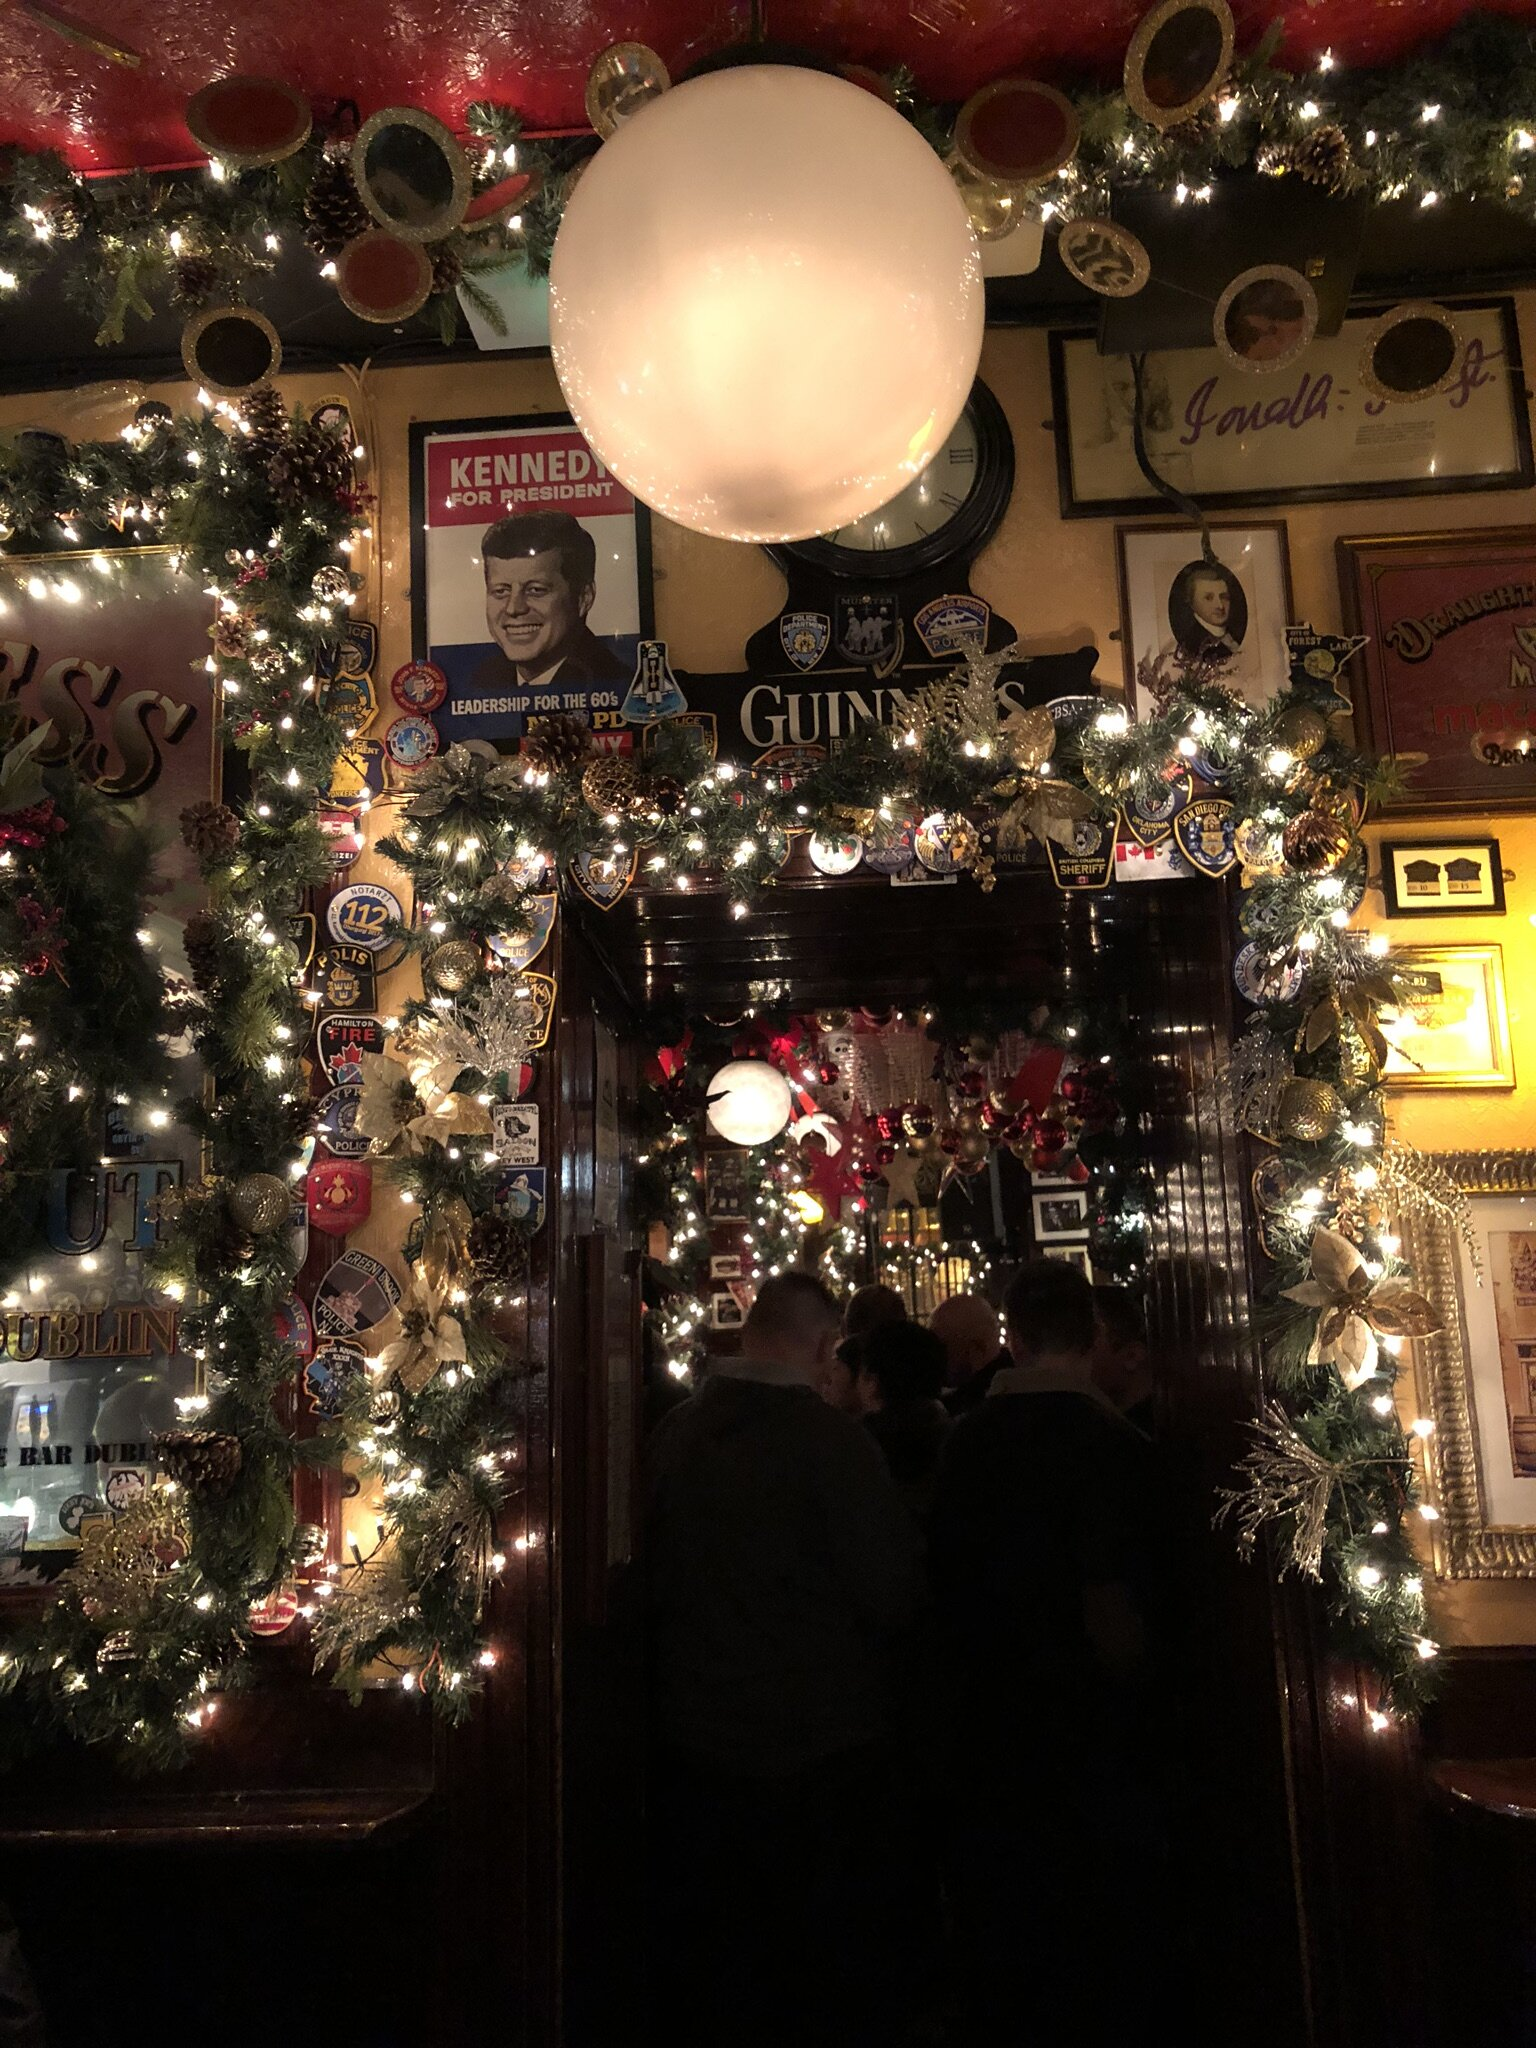 The decorations inside Temple Bar - really gets you into the festive mood!